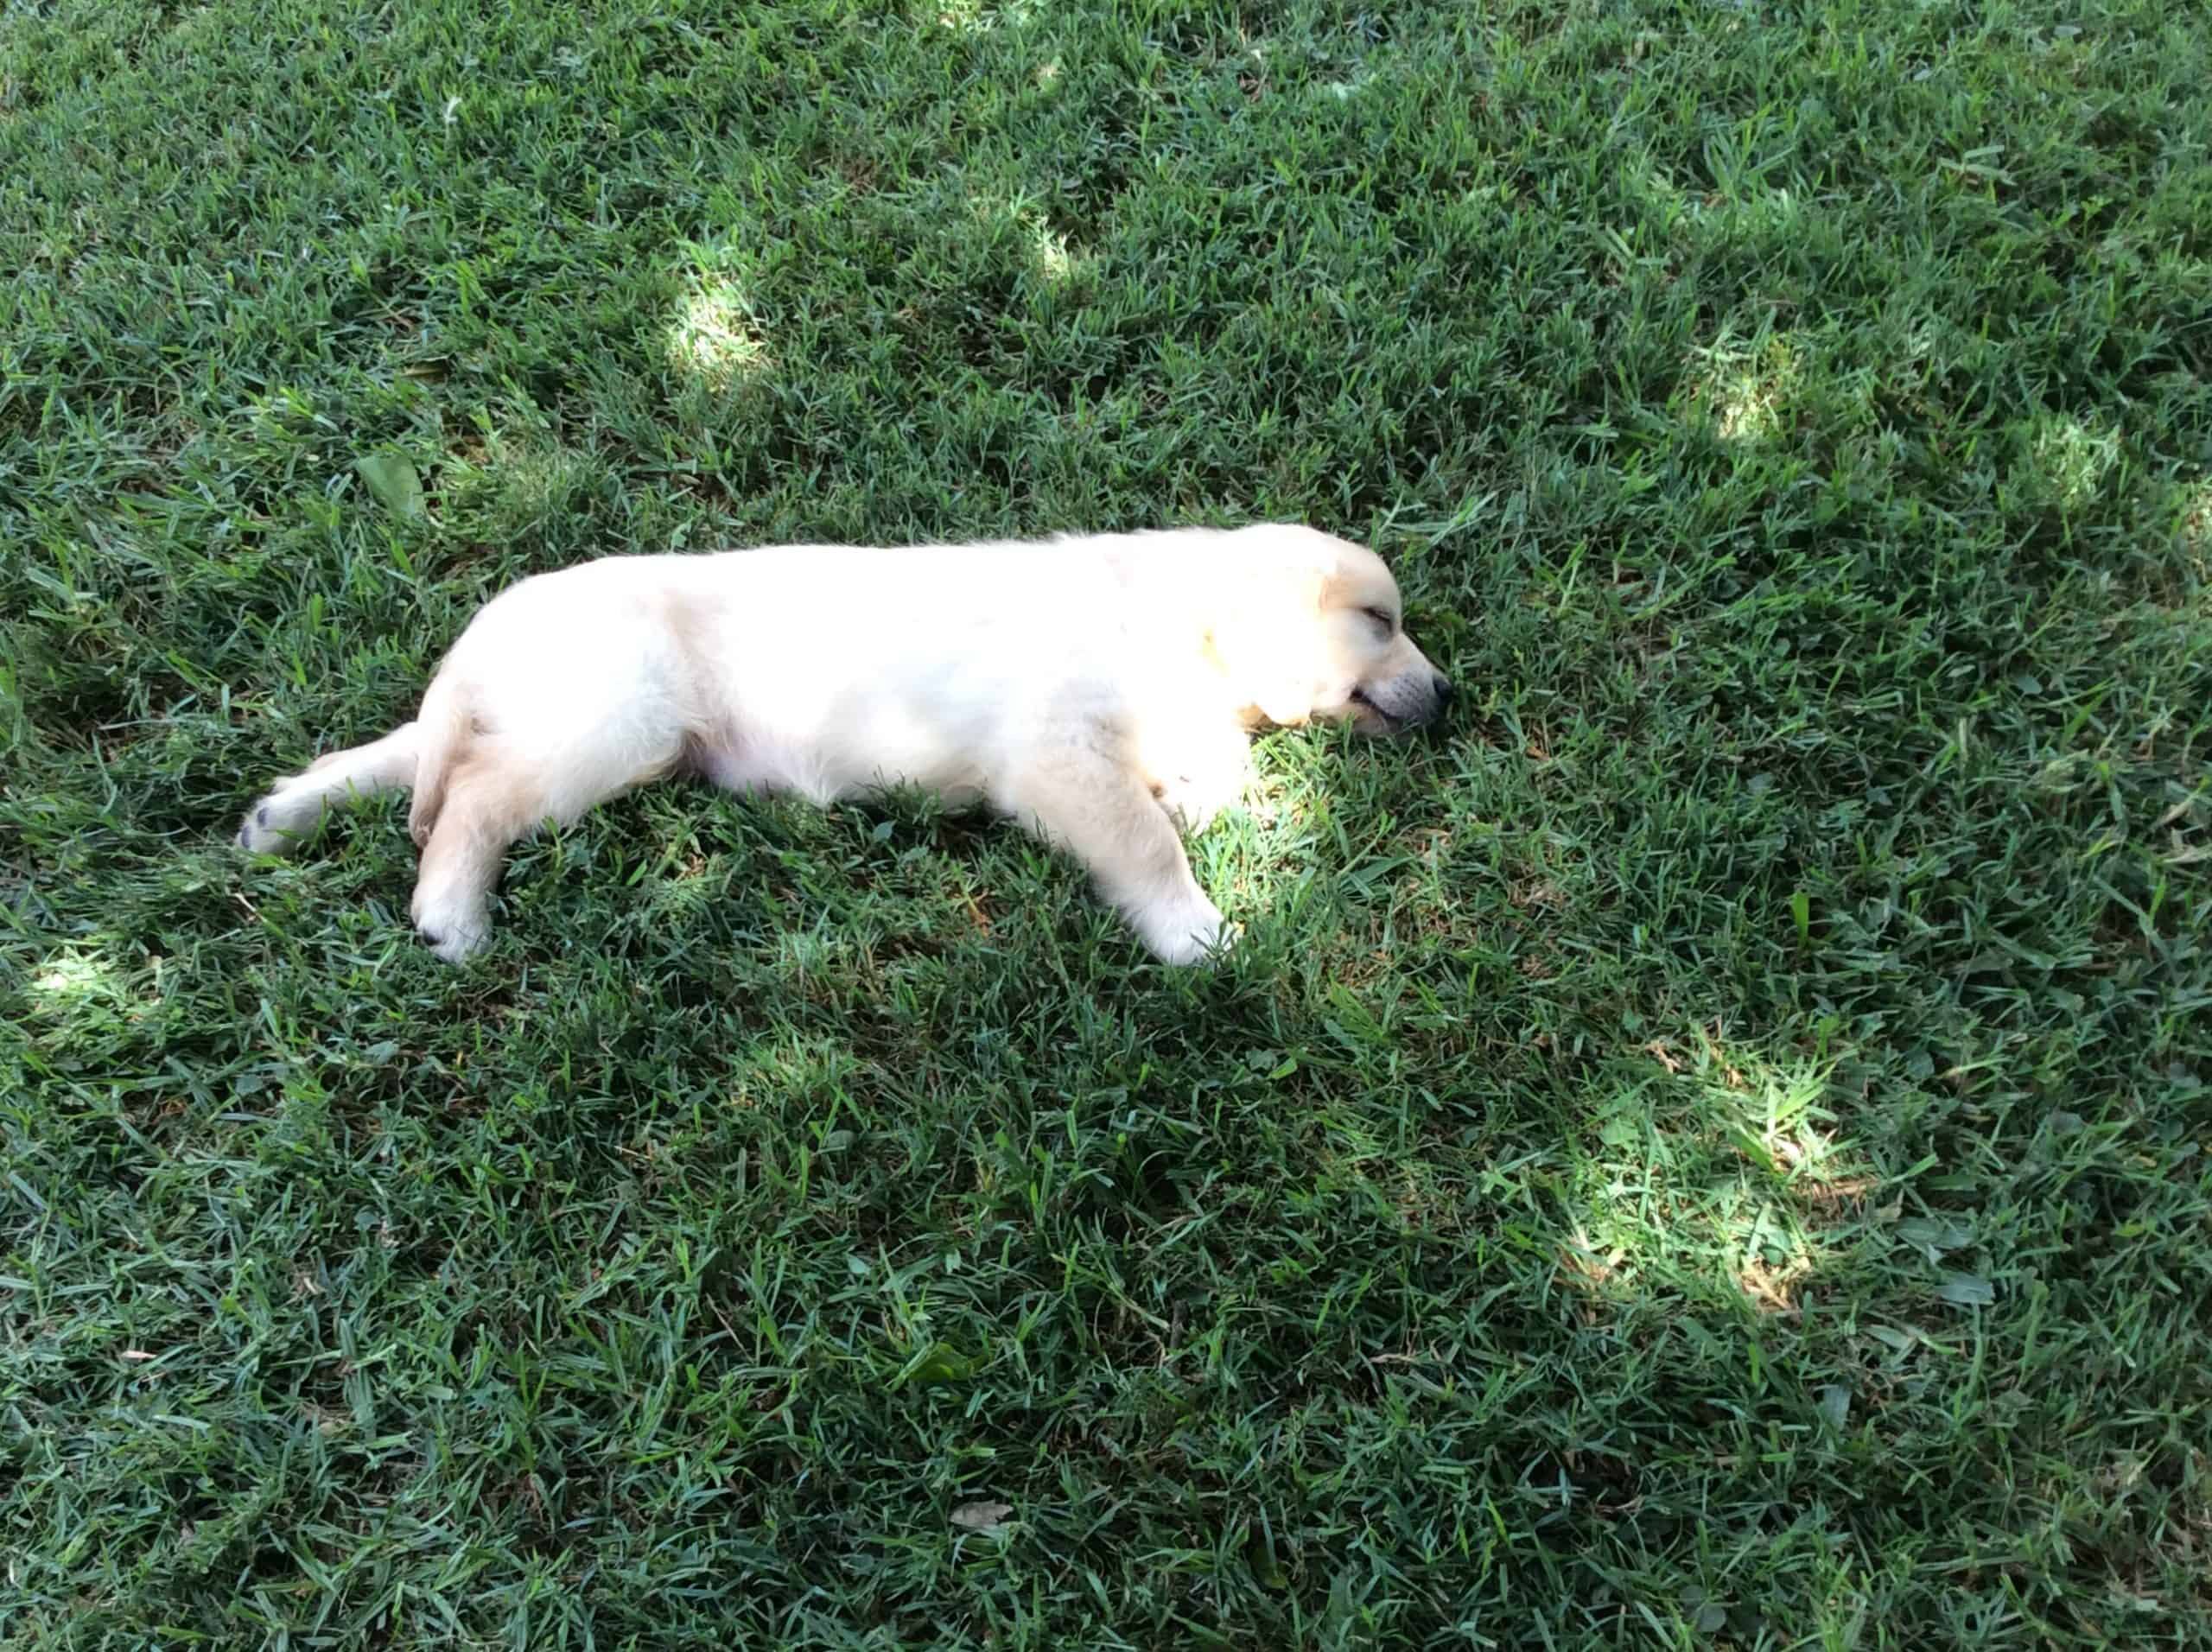 golden retriever pup asleep on the lawn